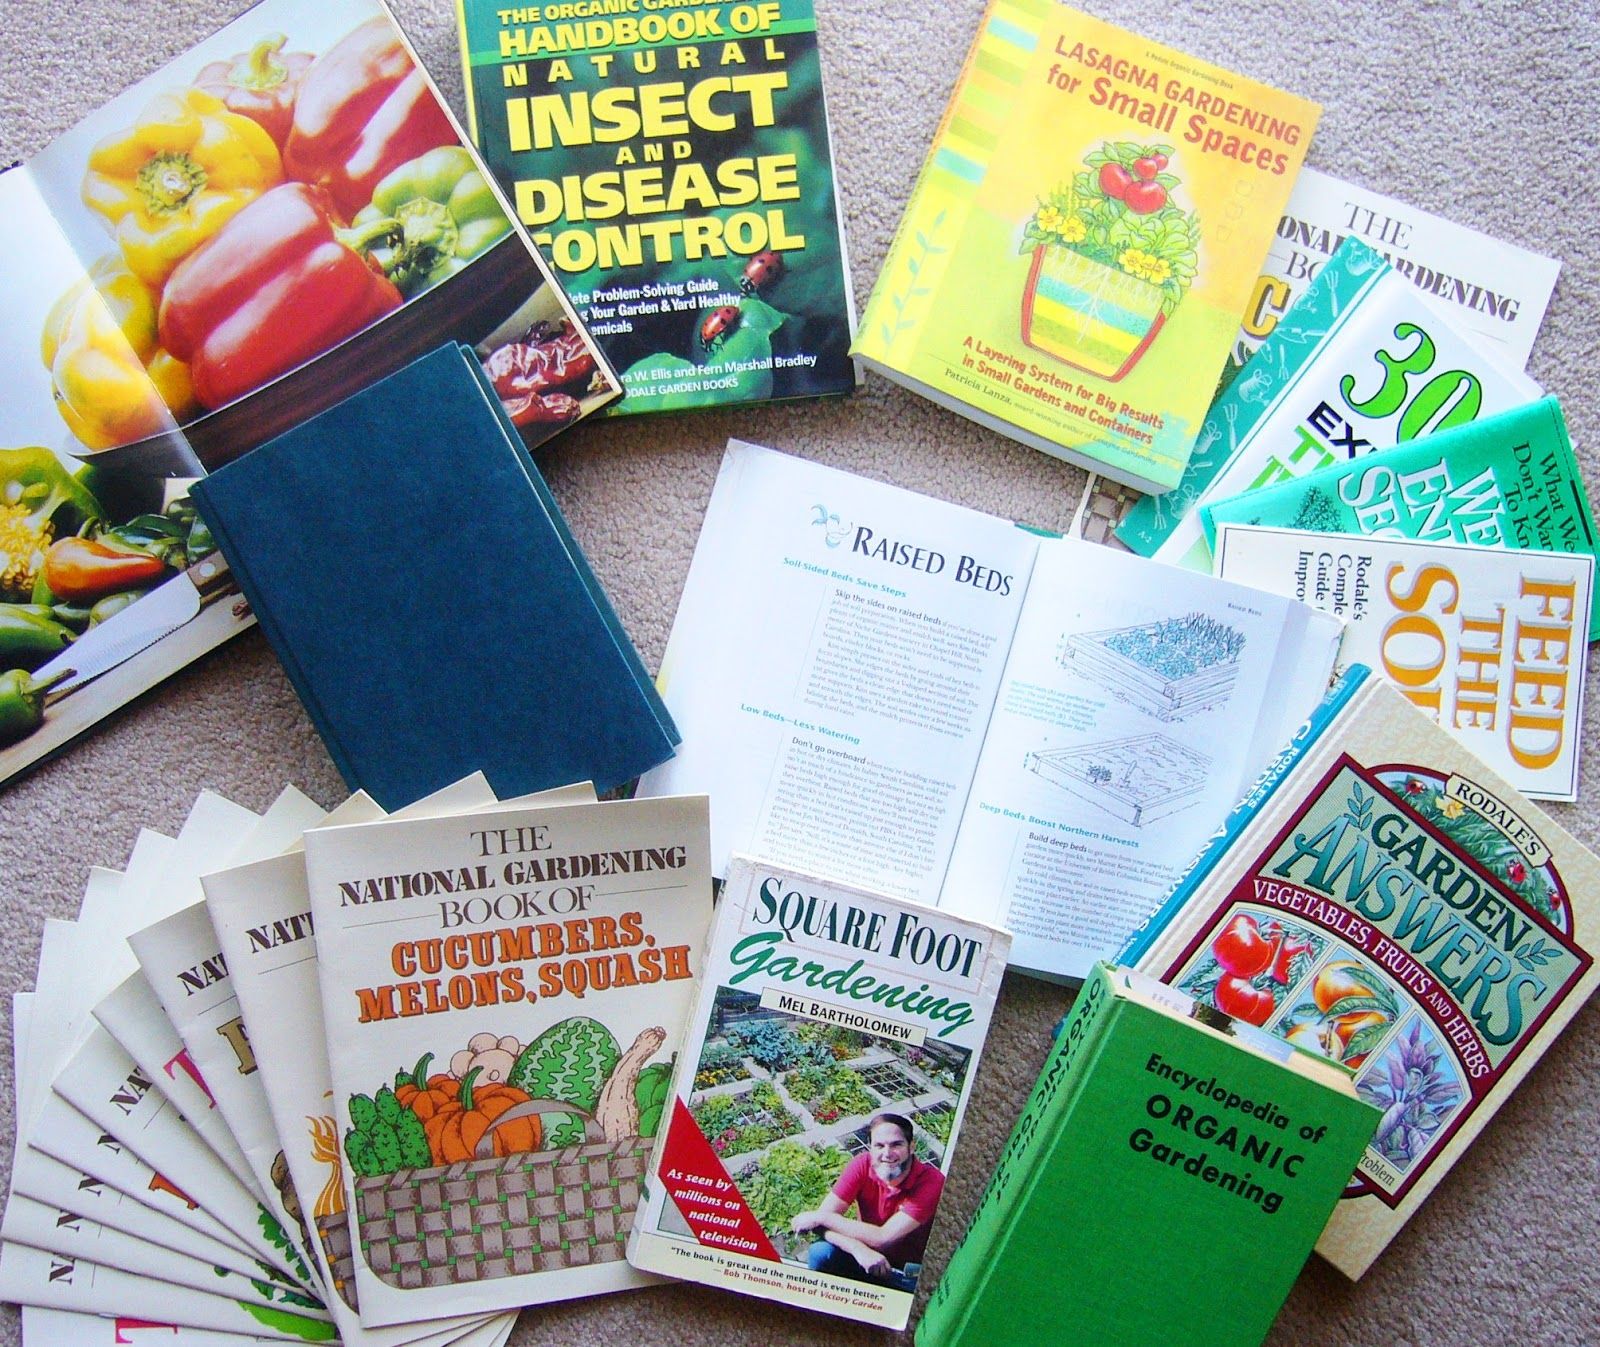 Square foot gardening book -  How To Incorporate Their Knowledge Into My Square Foot Garden Journey I Enjoy The Feel Of A Book In My Hands Over A Computer On My Lap While Learning